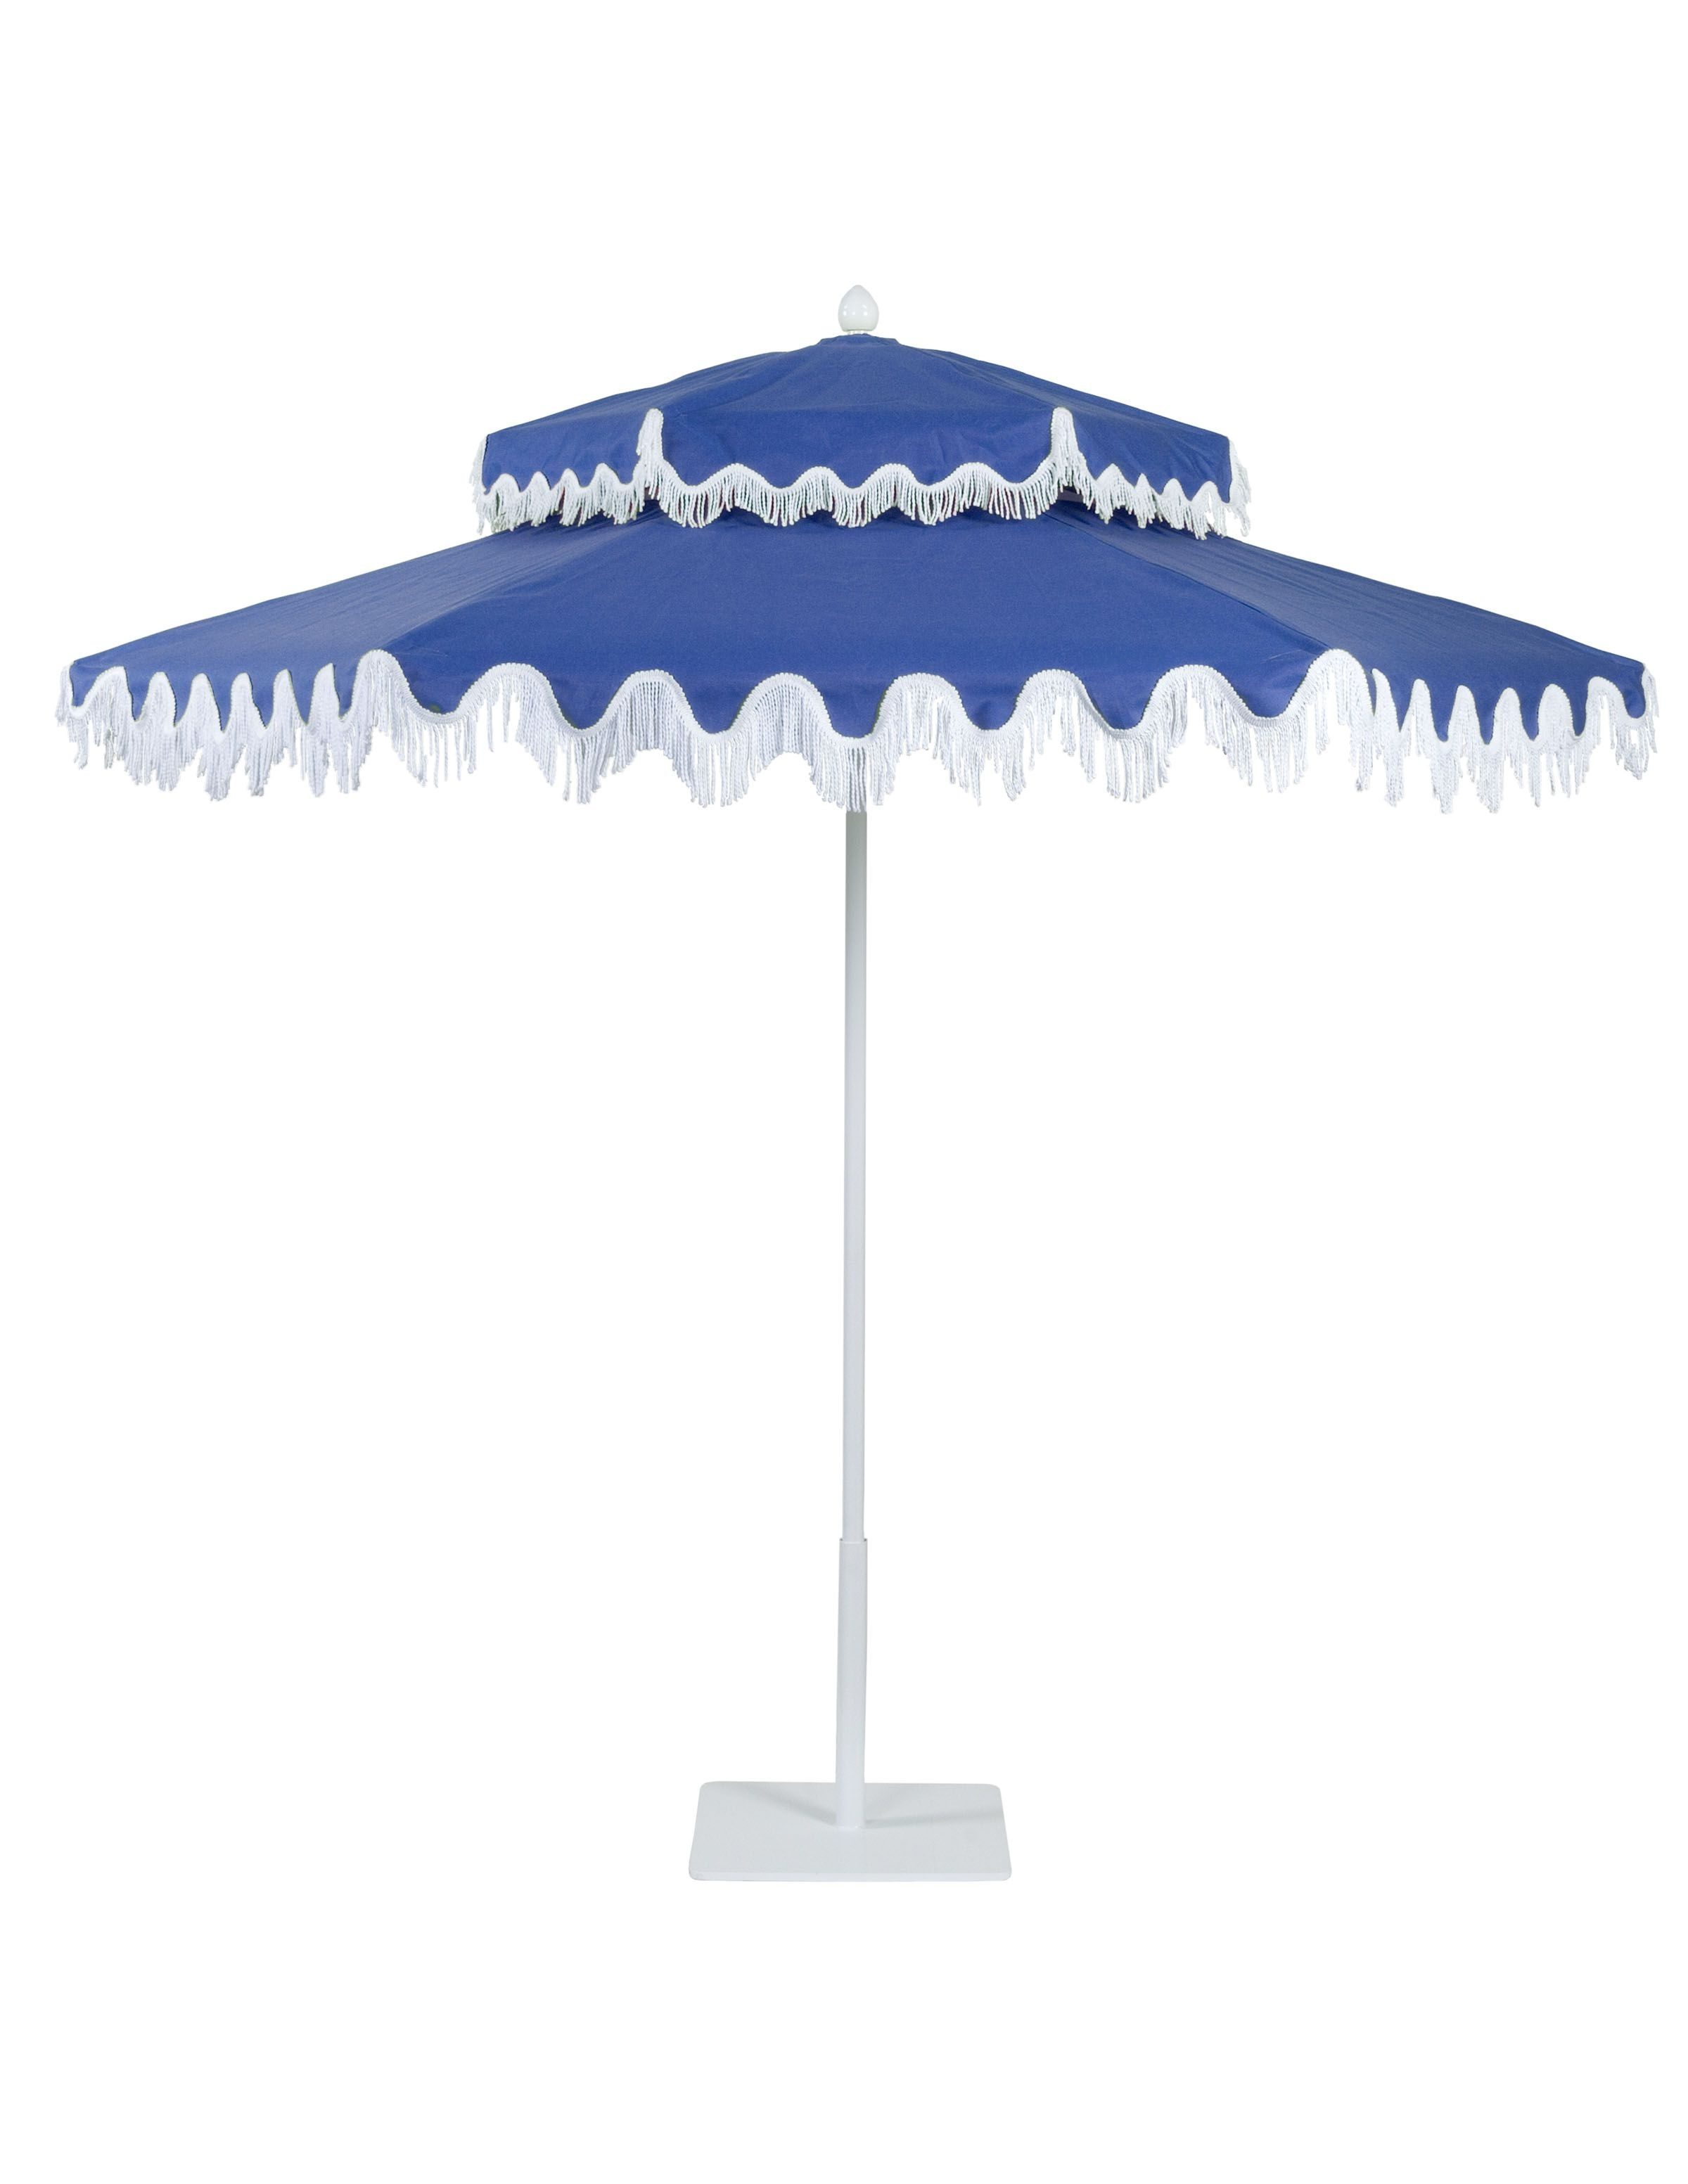 Double Decker Aluminum Umbrella With White Frame In Anchor Blue Pertaining To Latest Patio Umbrellas With Fringe (View 8 of 20)